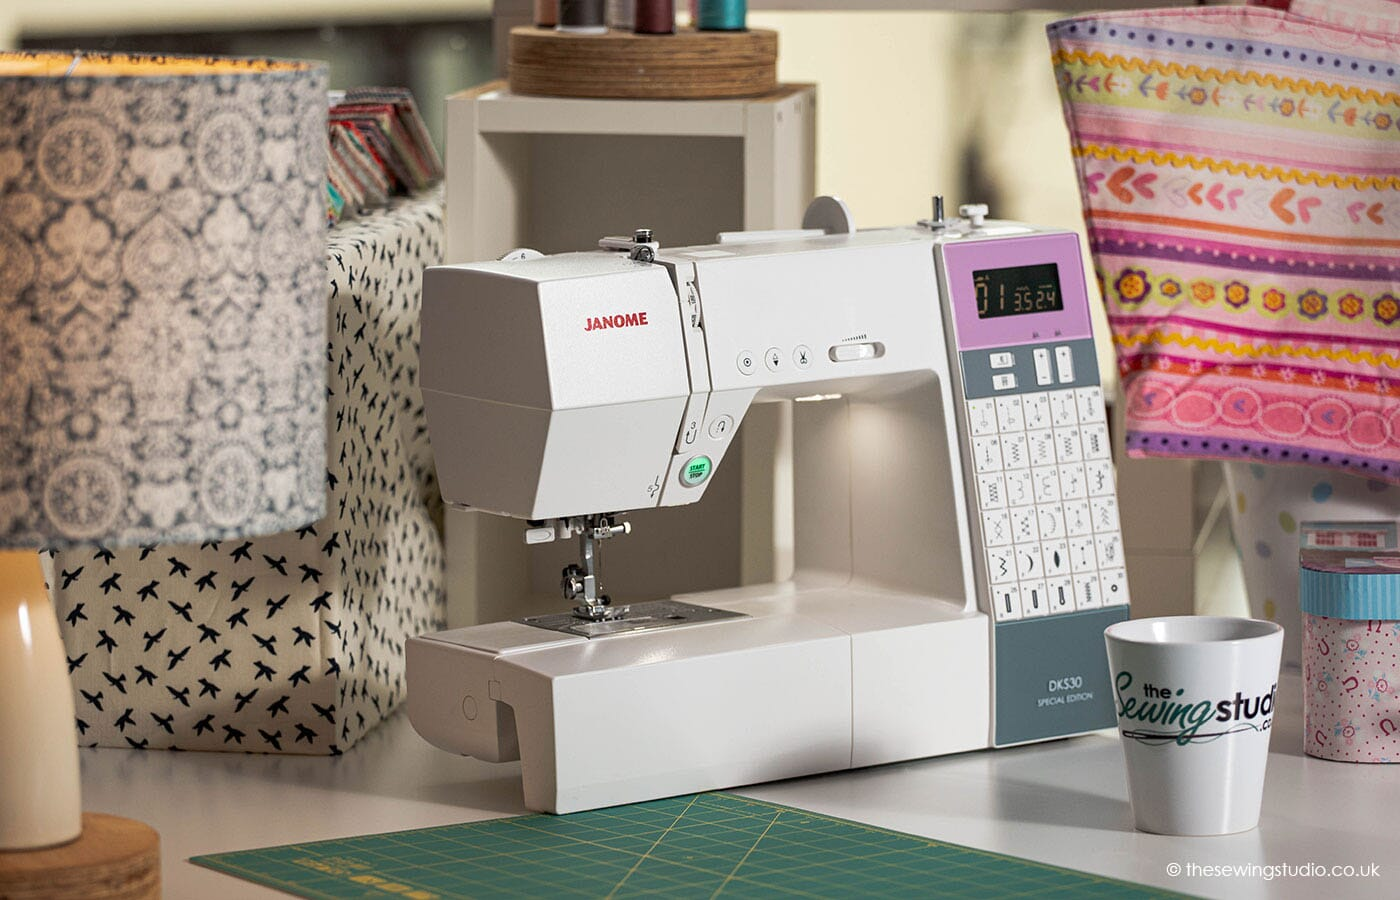 Janome DKS30 Sewing Machine in a Sewing Room